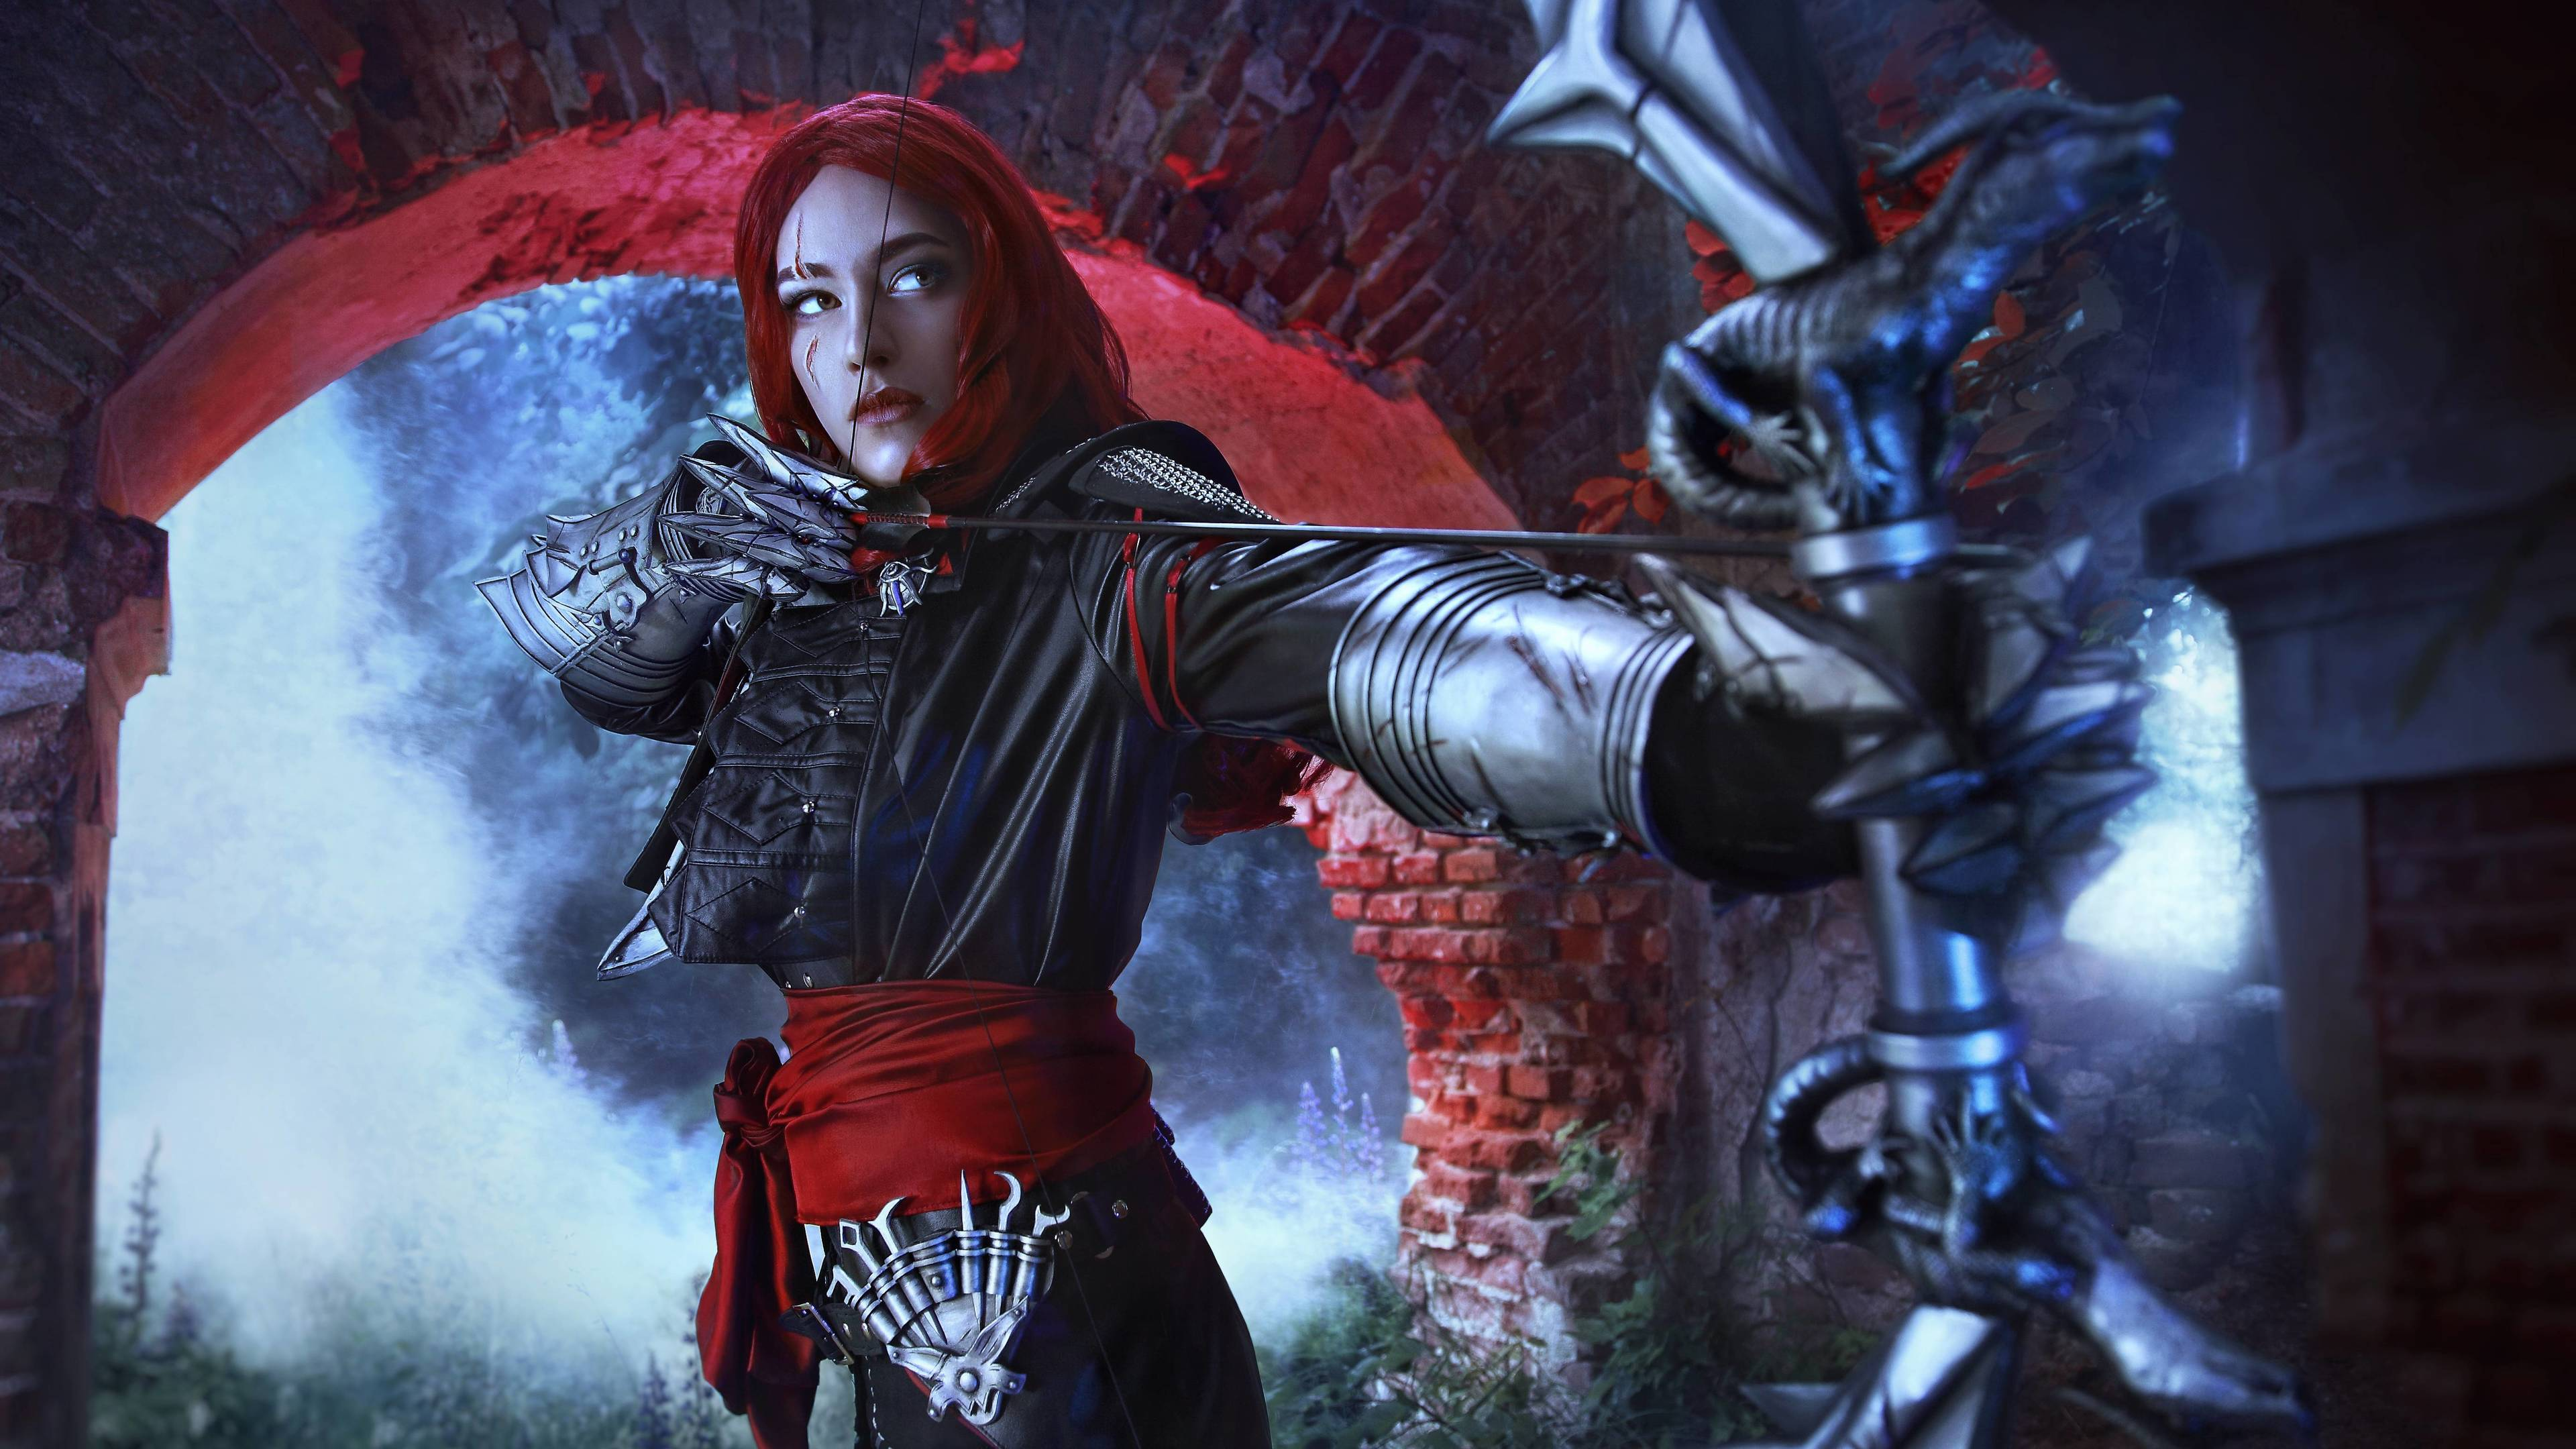 dragon age inquisition cosplay 1543621255 - Dragon Age Inquisition Cosplay - hd-wallpapers, games wallpapers, dragon age inquisition wallpapers, deviantart wallpapers, 4k-wallpapers